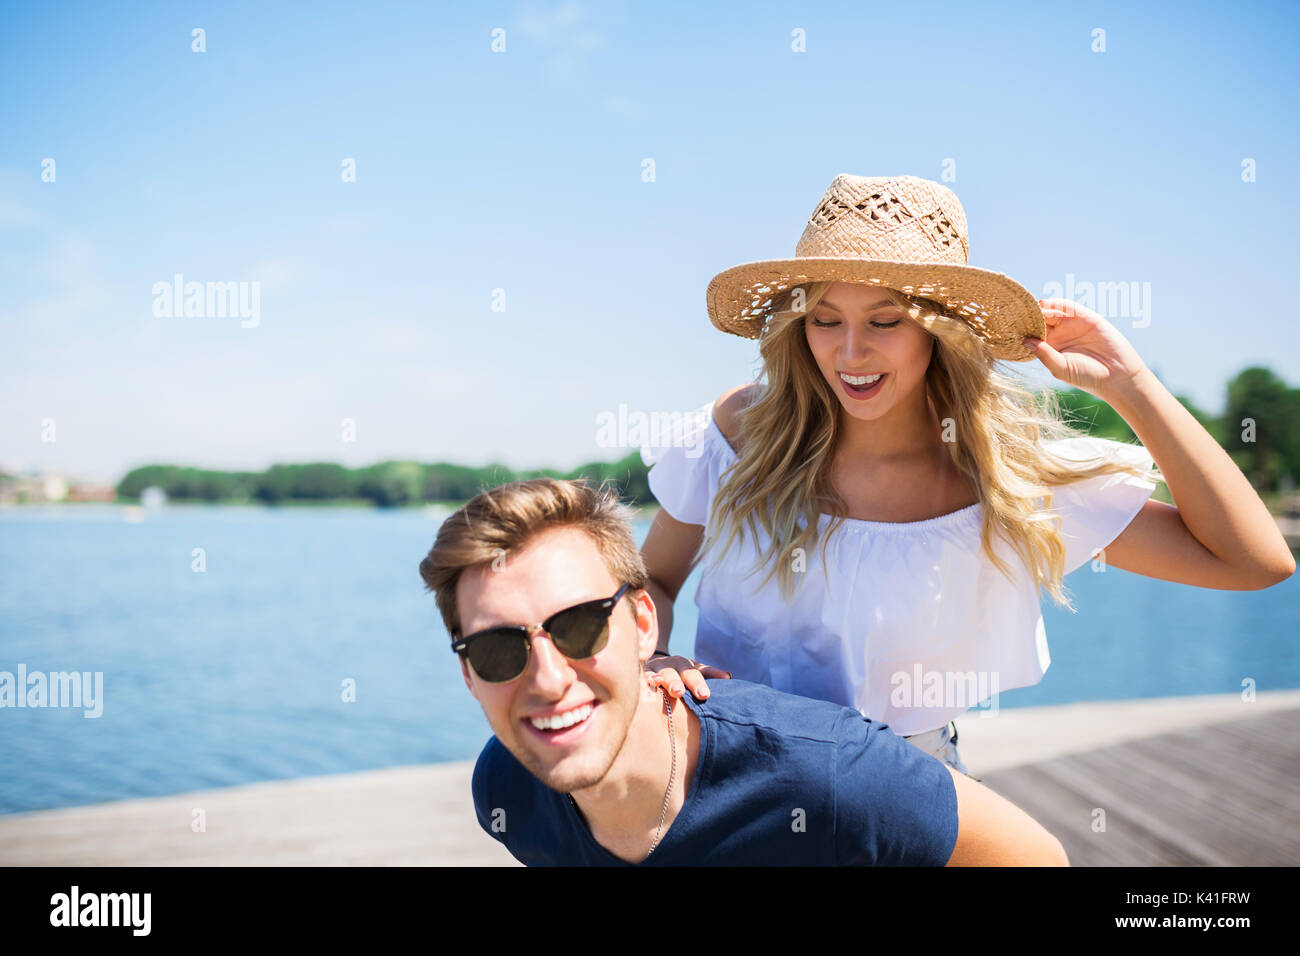 A photo of young, happy couple on holiday. The man is giving his girlfriend a piggyback. - Stock Image